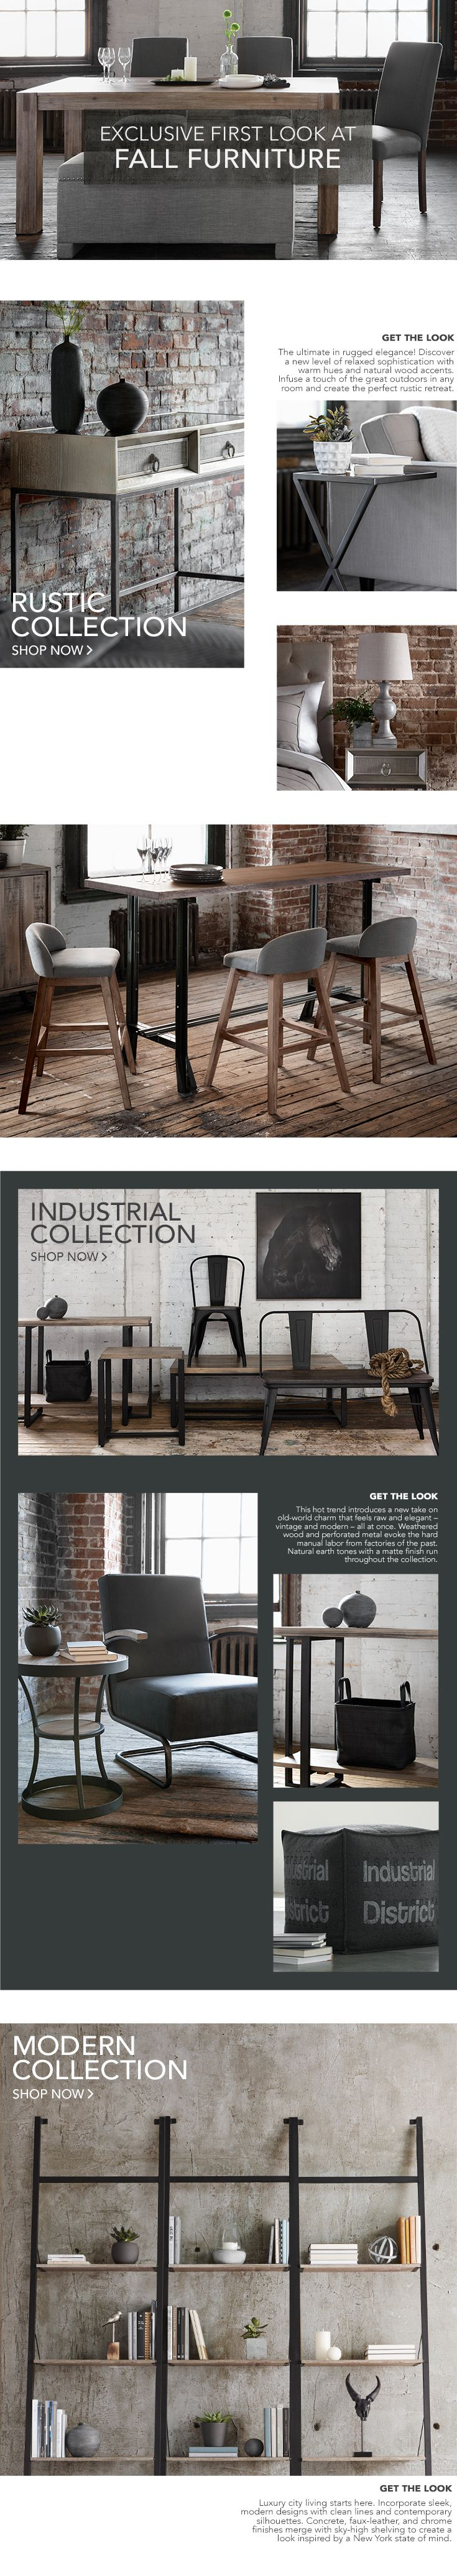 Get an exclusive first look at our Fall Furniture collections:  rustic, industrial and modern